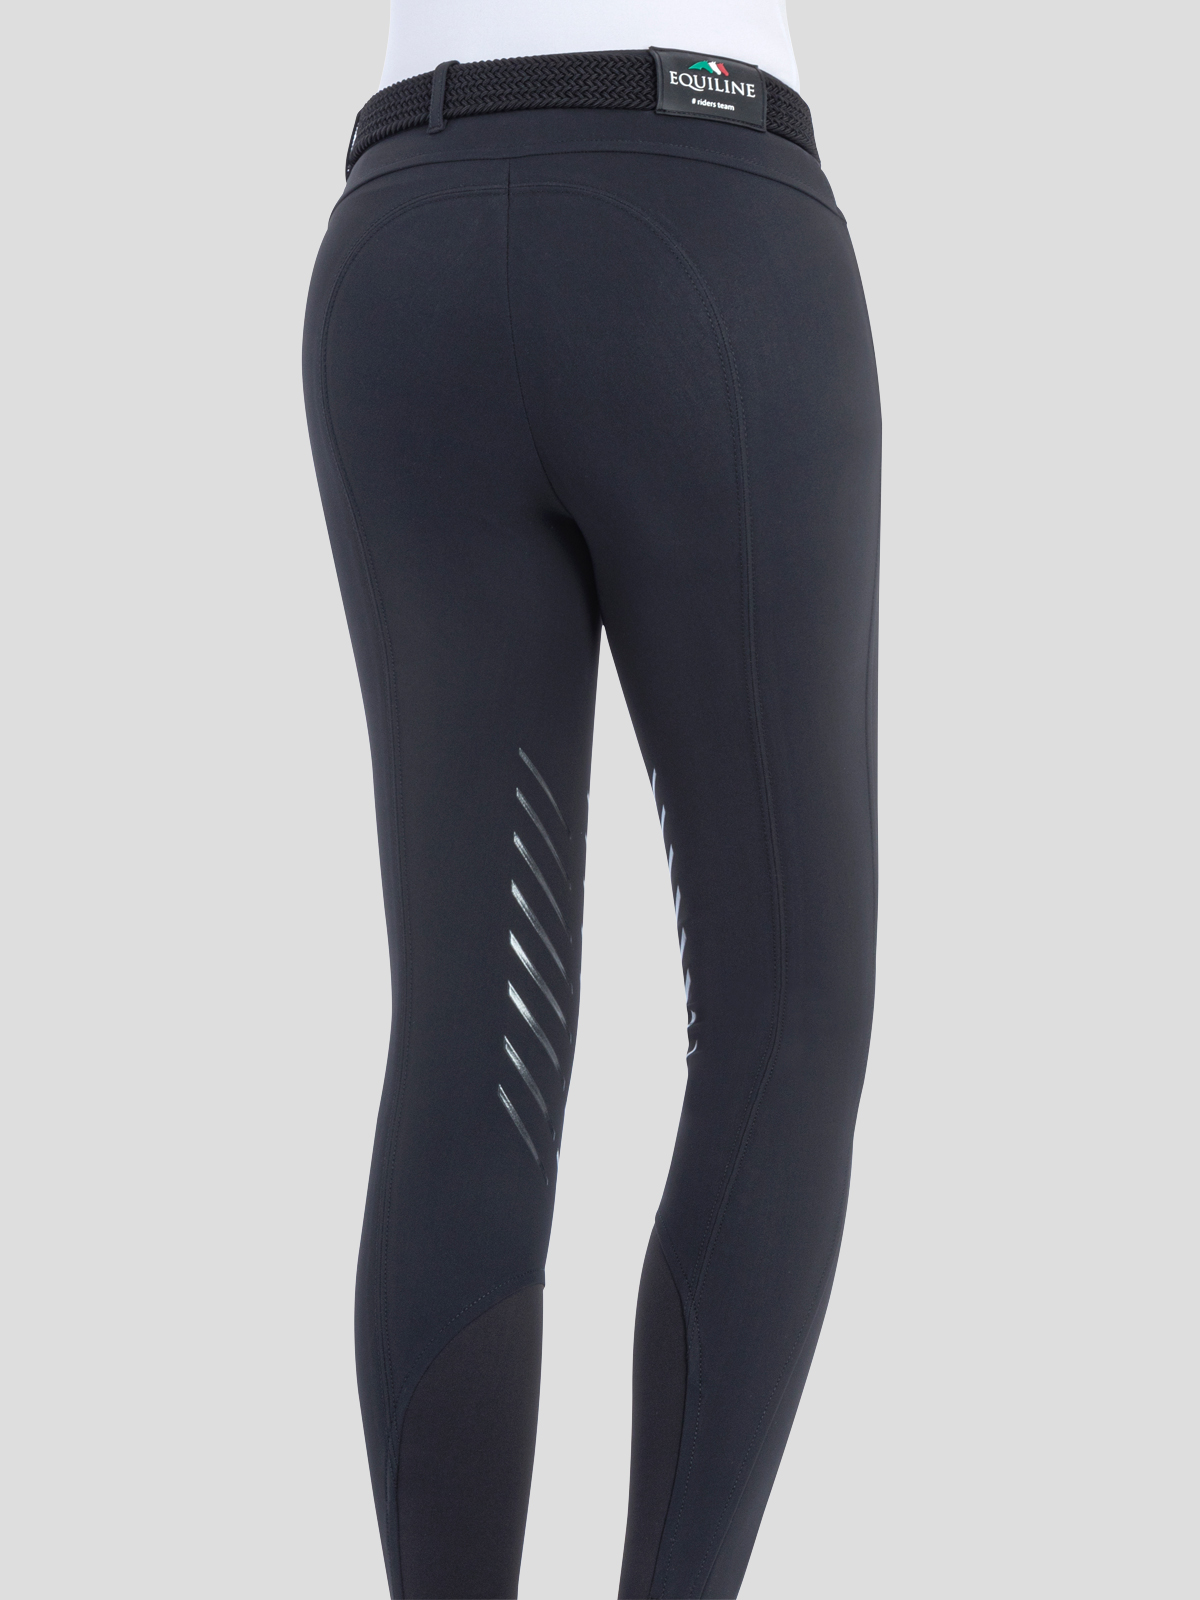 CostantineC Women's Knee Grip Breeches in B-Move 2